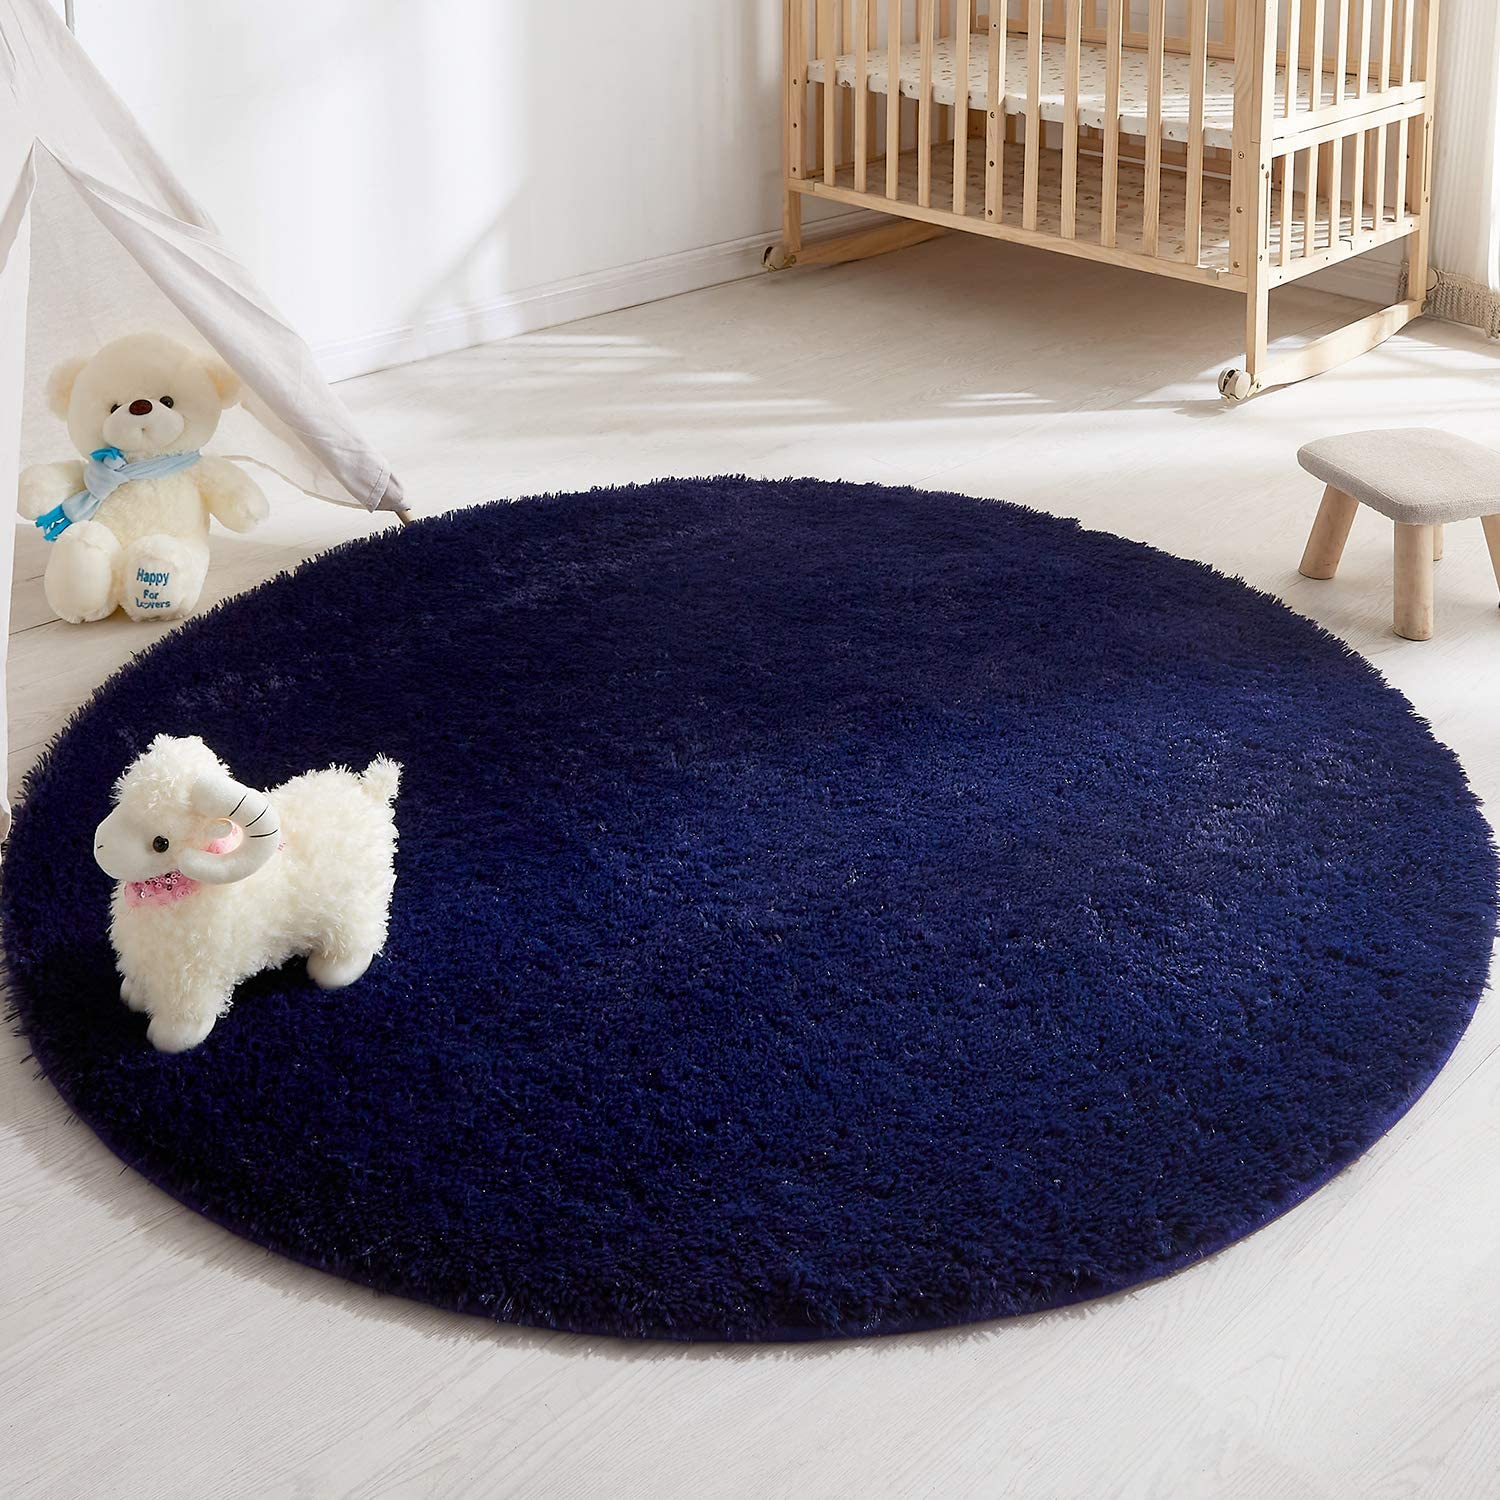 Soft Round Area Rug for Bedroom,4 Foot Navy Blue Circle Rug for Nursery Room, Fluffy Carpet for Kids Room, Shaggy Floor Mat for Living Room, Furry Area Rug for Baby, Teen Room Decor for Girls Boys